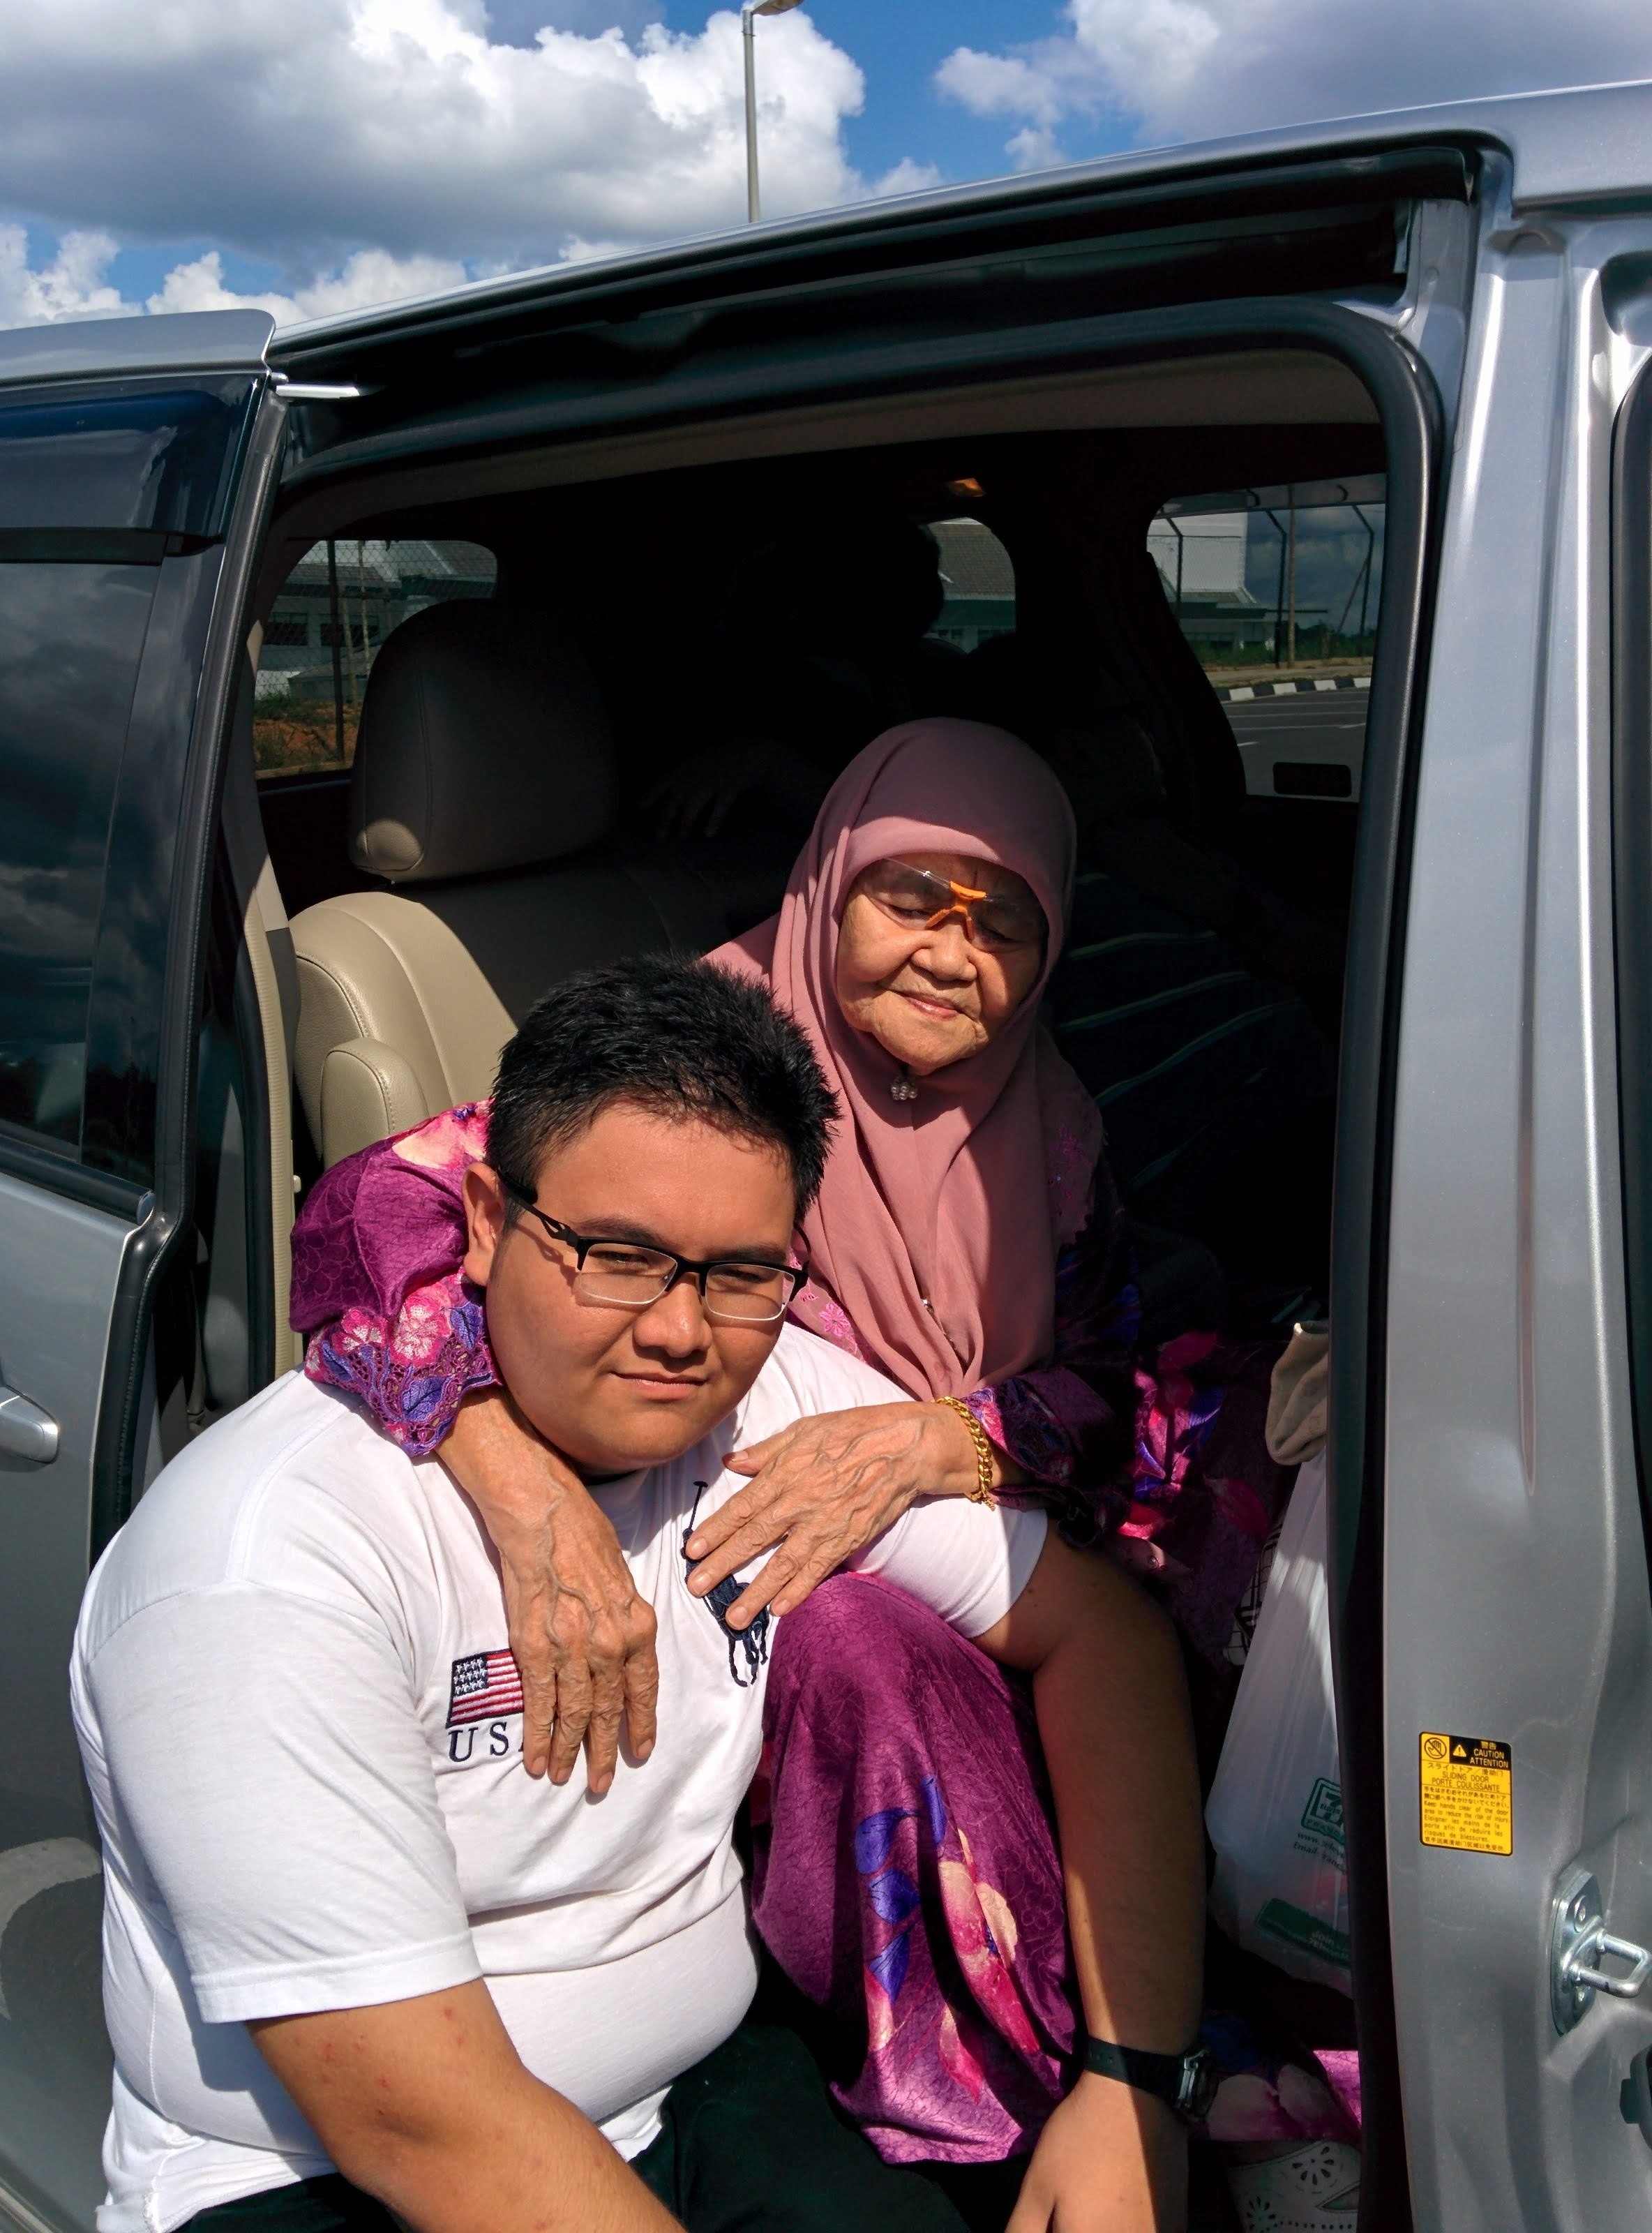 Ton binti Abdullah, 86, in a pink headscarf sits in a van and has her arms around a young man, believed to be her grandson.